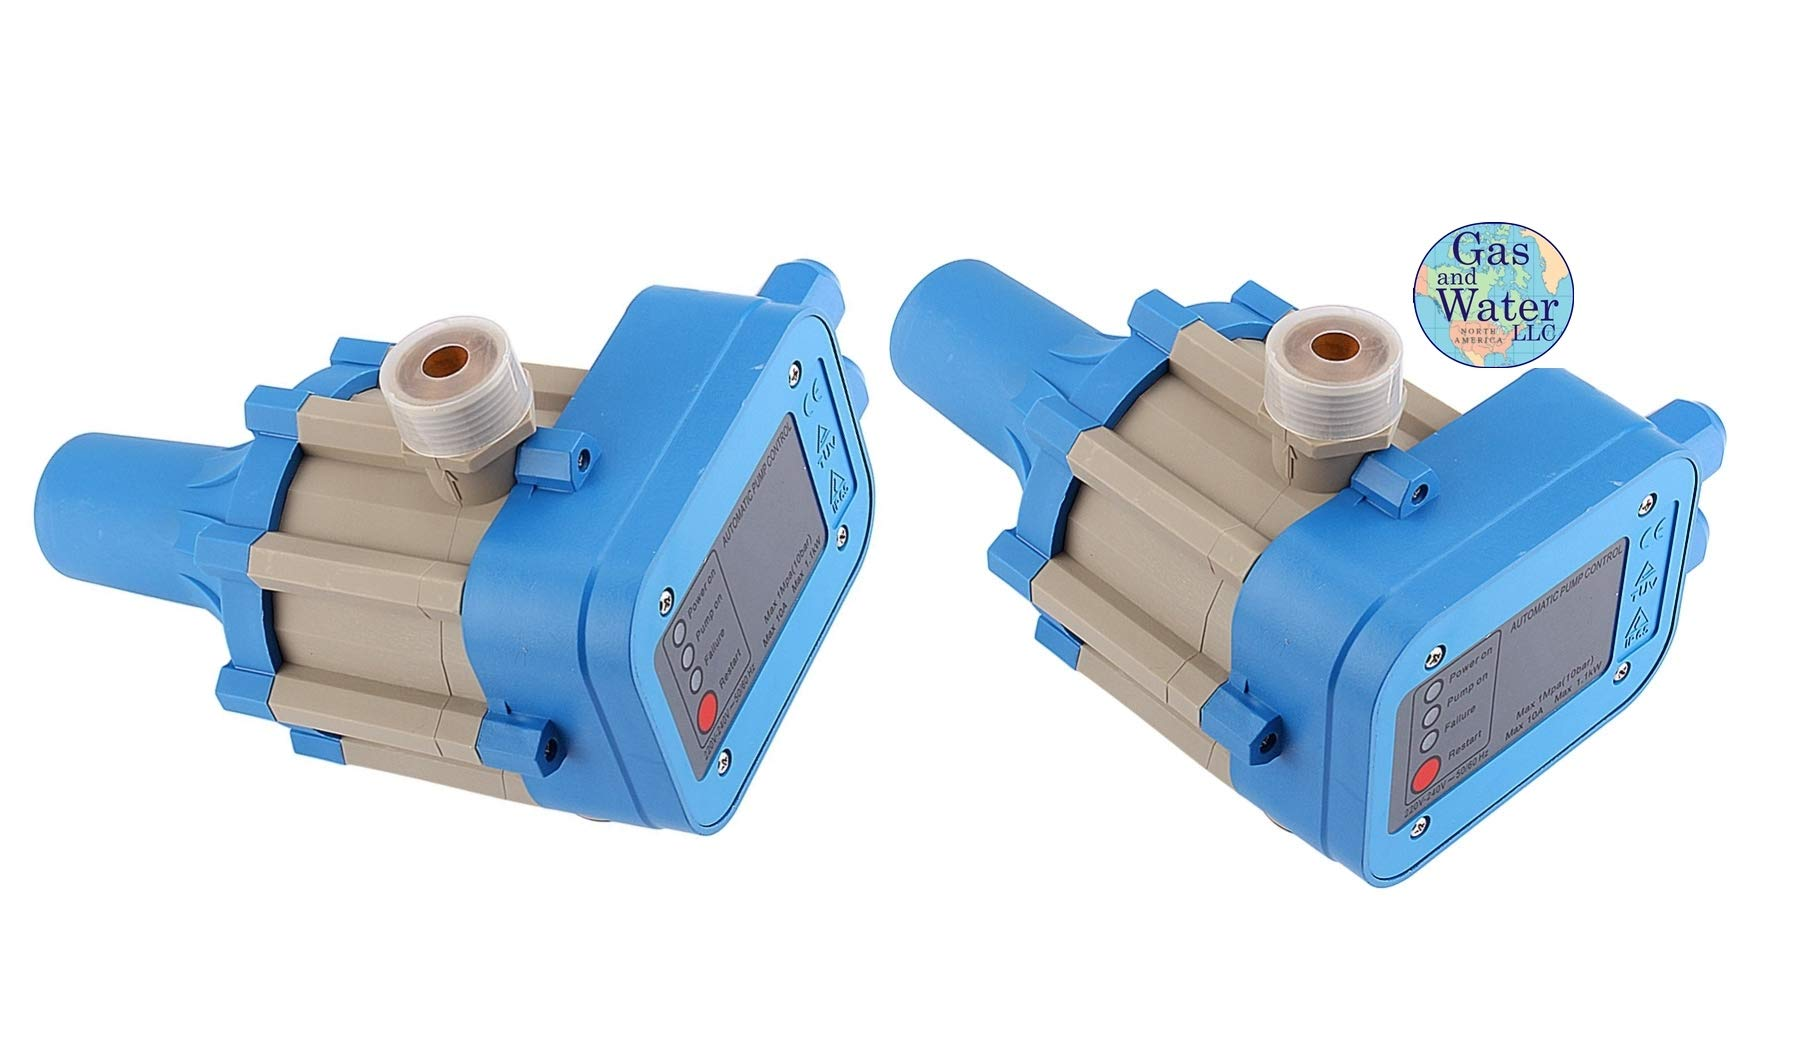 Lot of 2 Automatic Electronic Switch Control Water Pump Pressure Controller 110 or 220V (works for both)